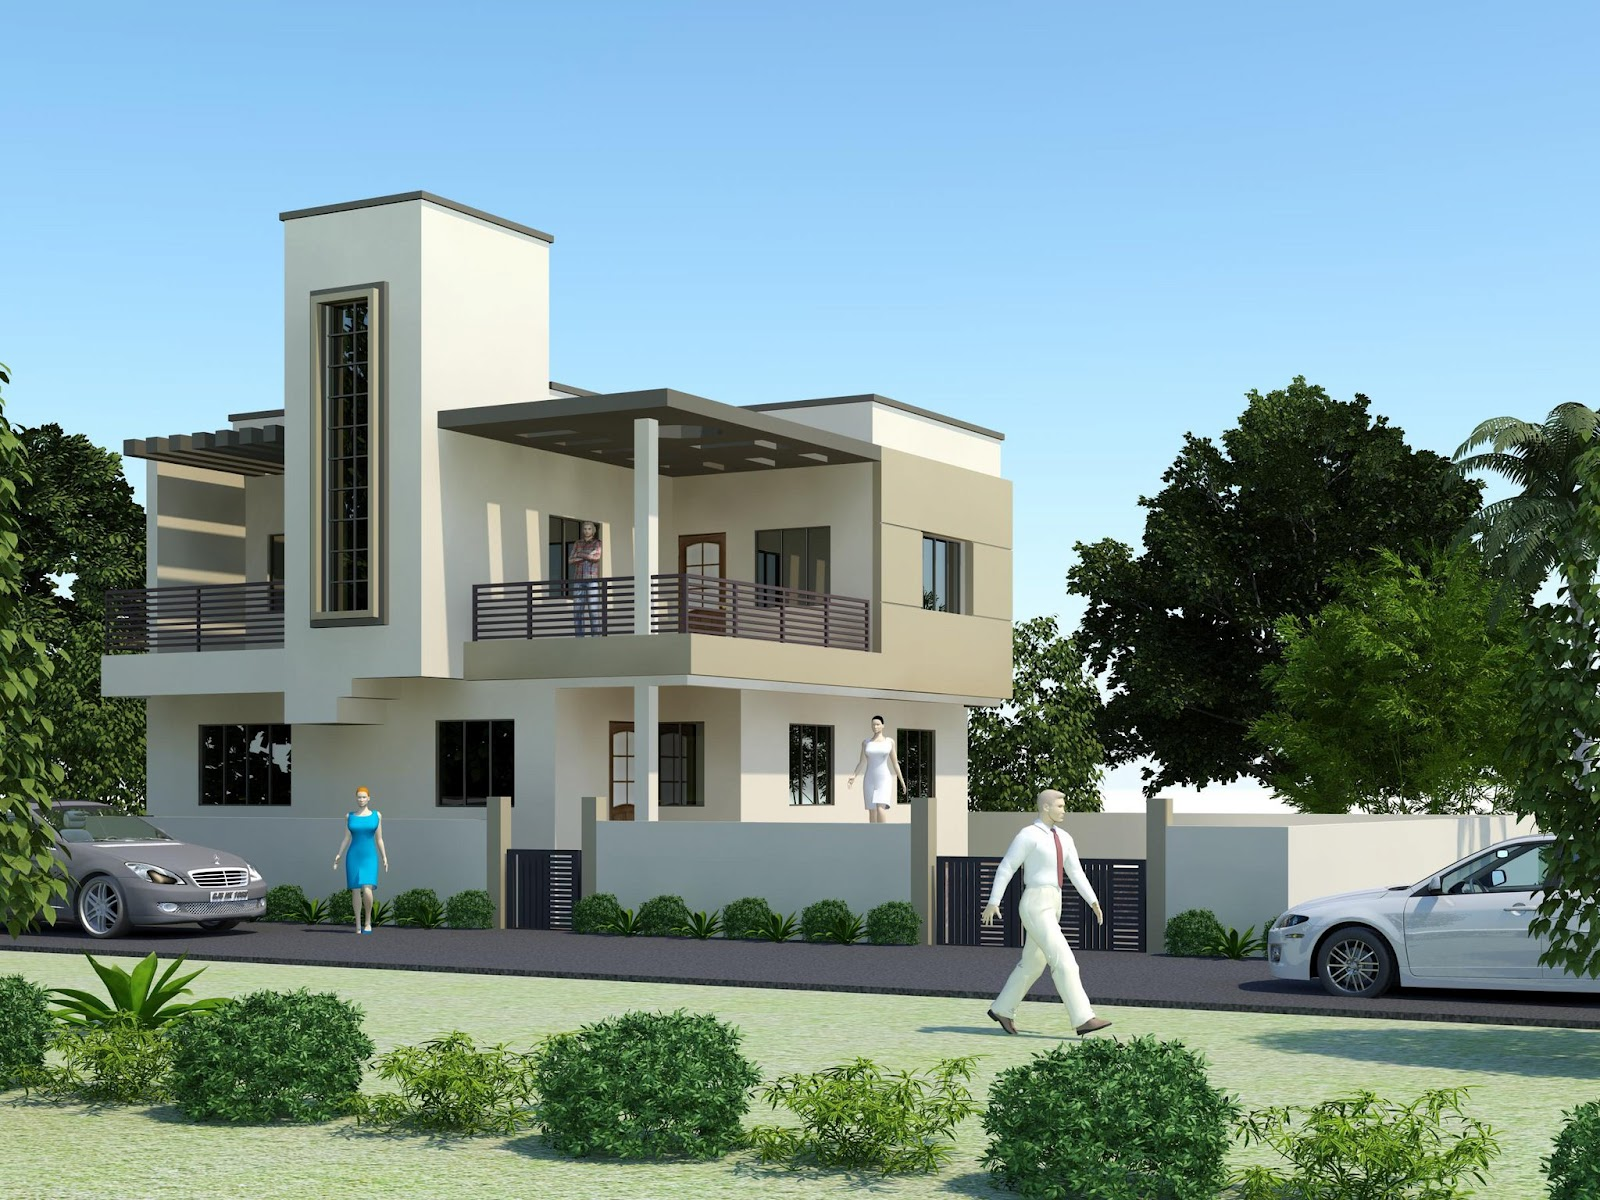 New home designs latest modern homes exterior designs for Home design exterior india